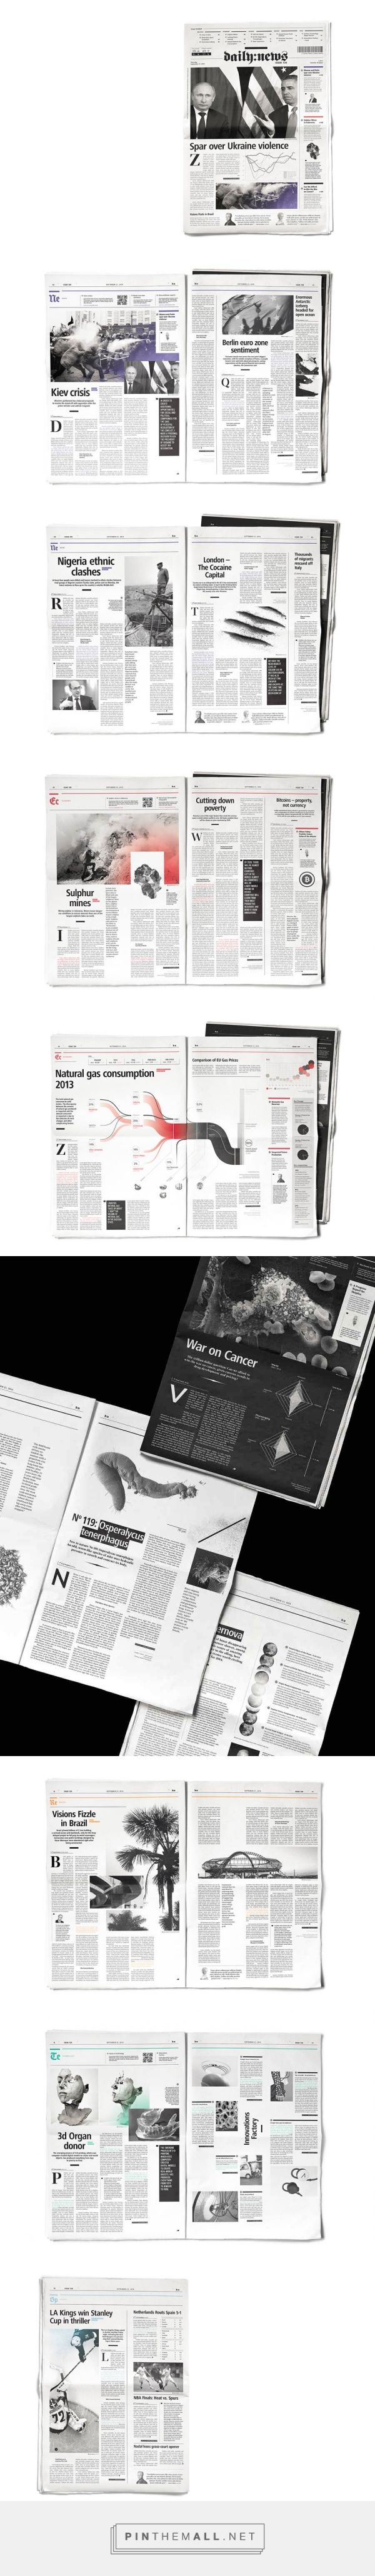 Editorial Design Inspiration: Daily News